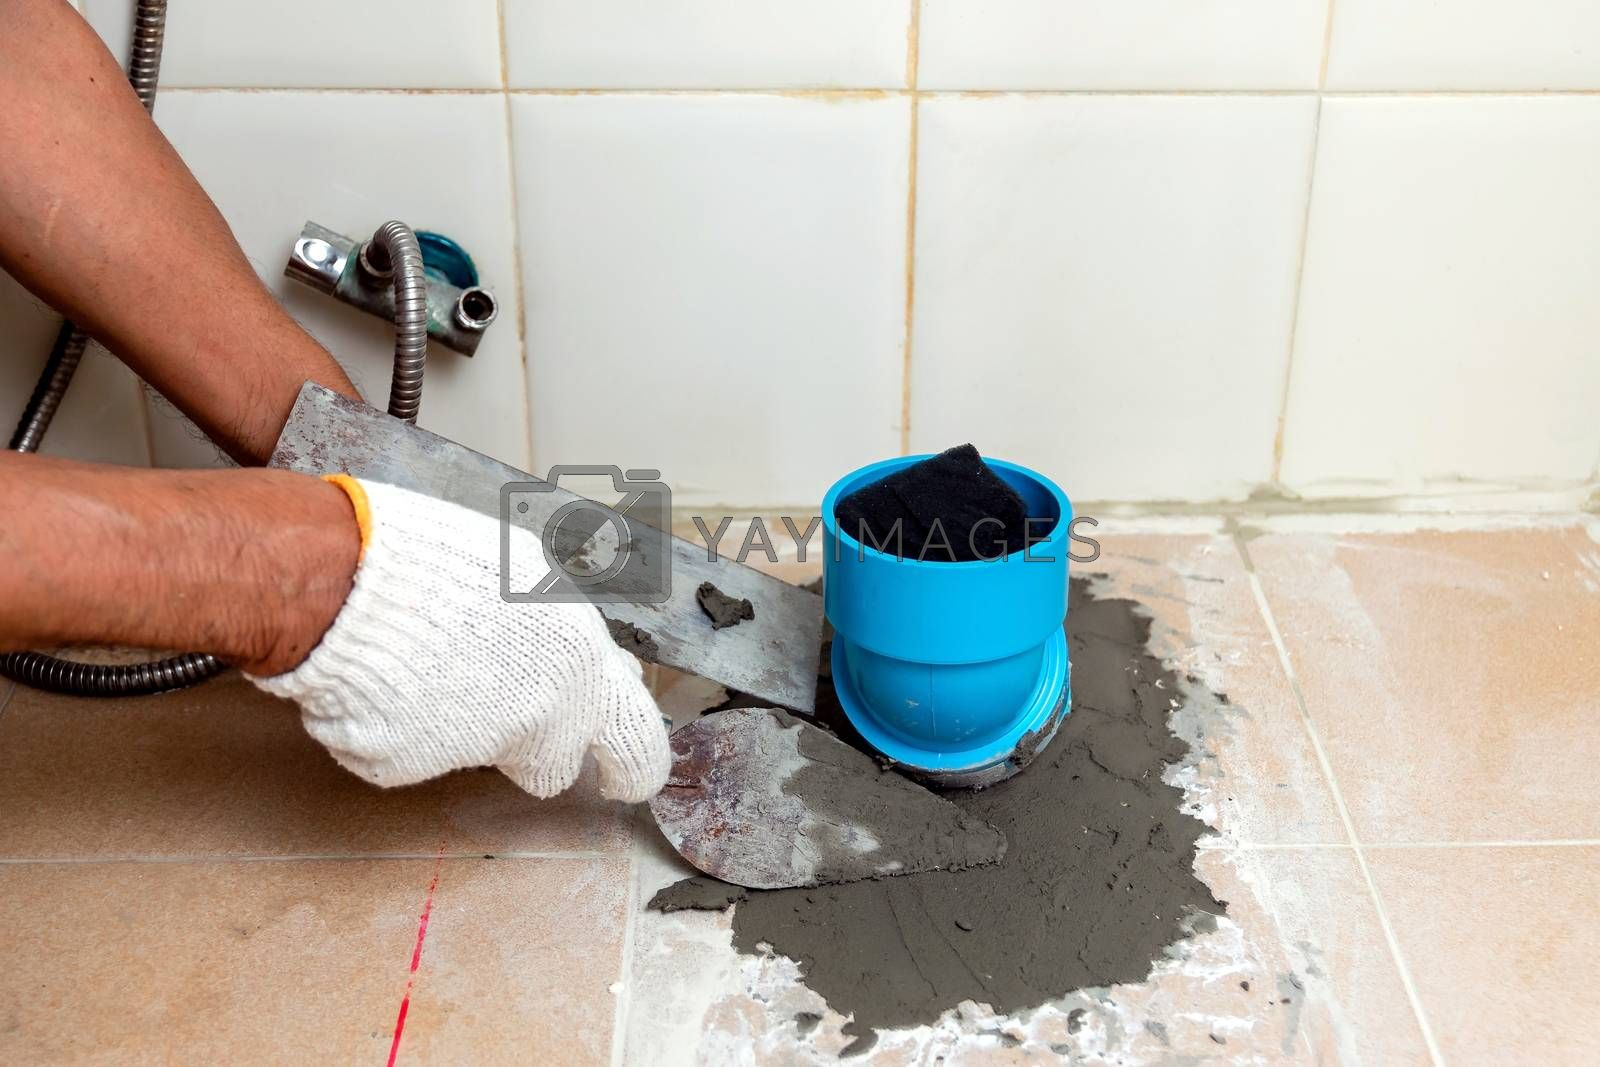 Construction workers are using plastering tools around the PVC pipe to drain the waste inside the bathroom.